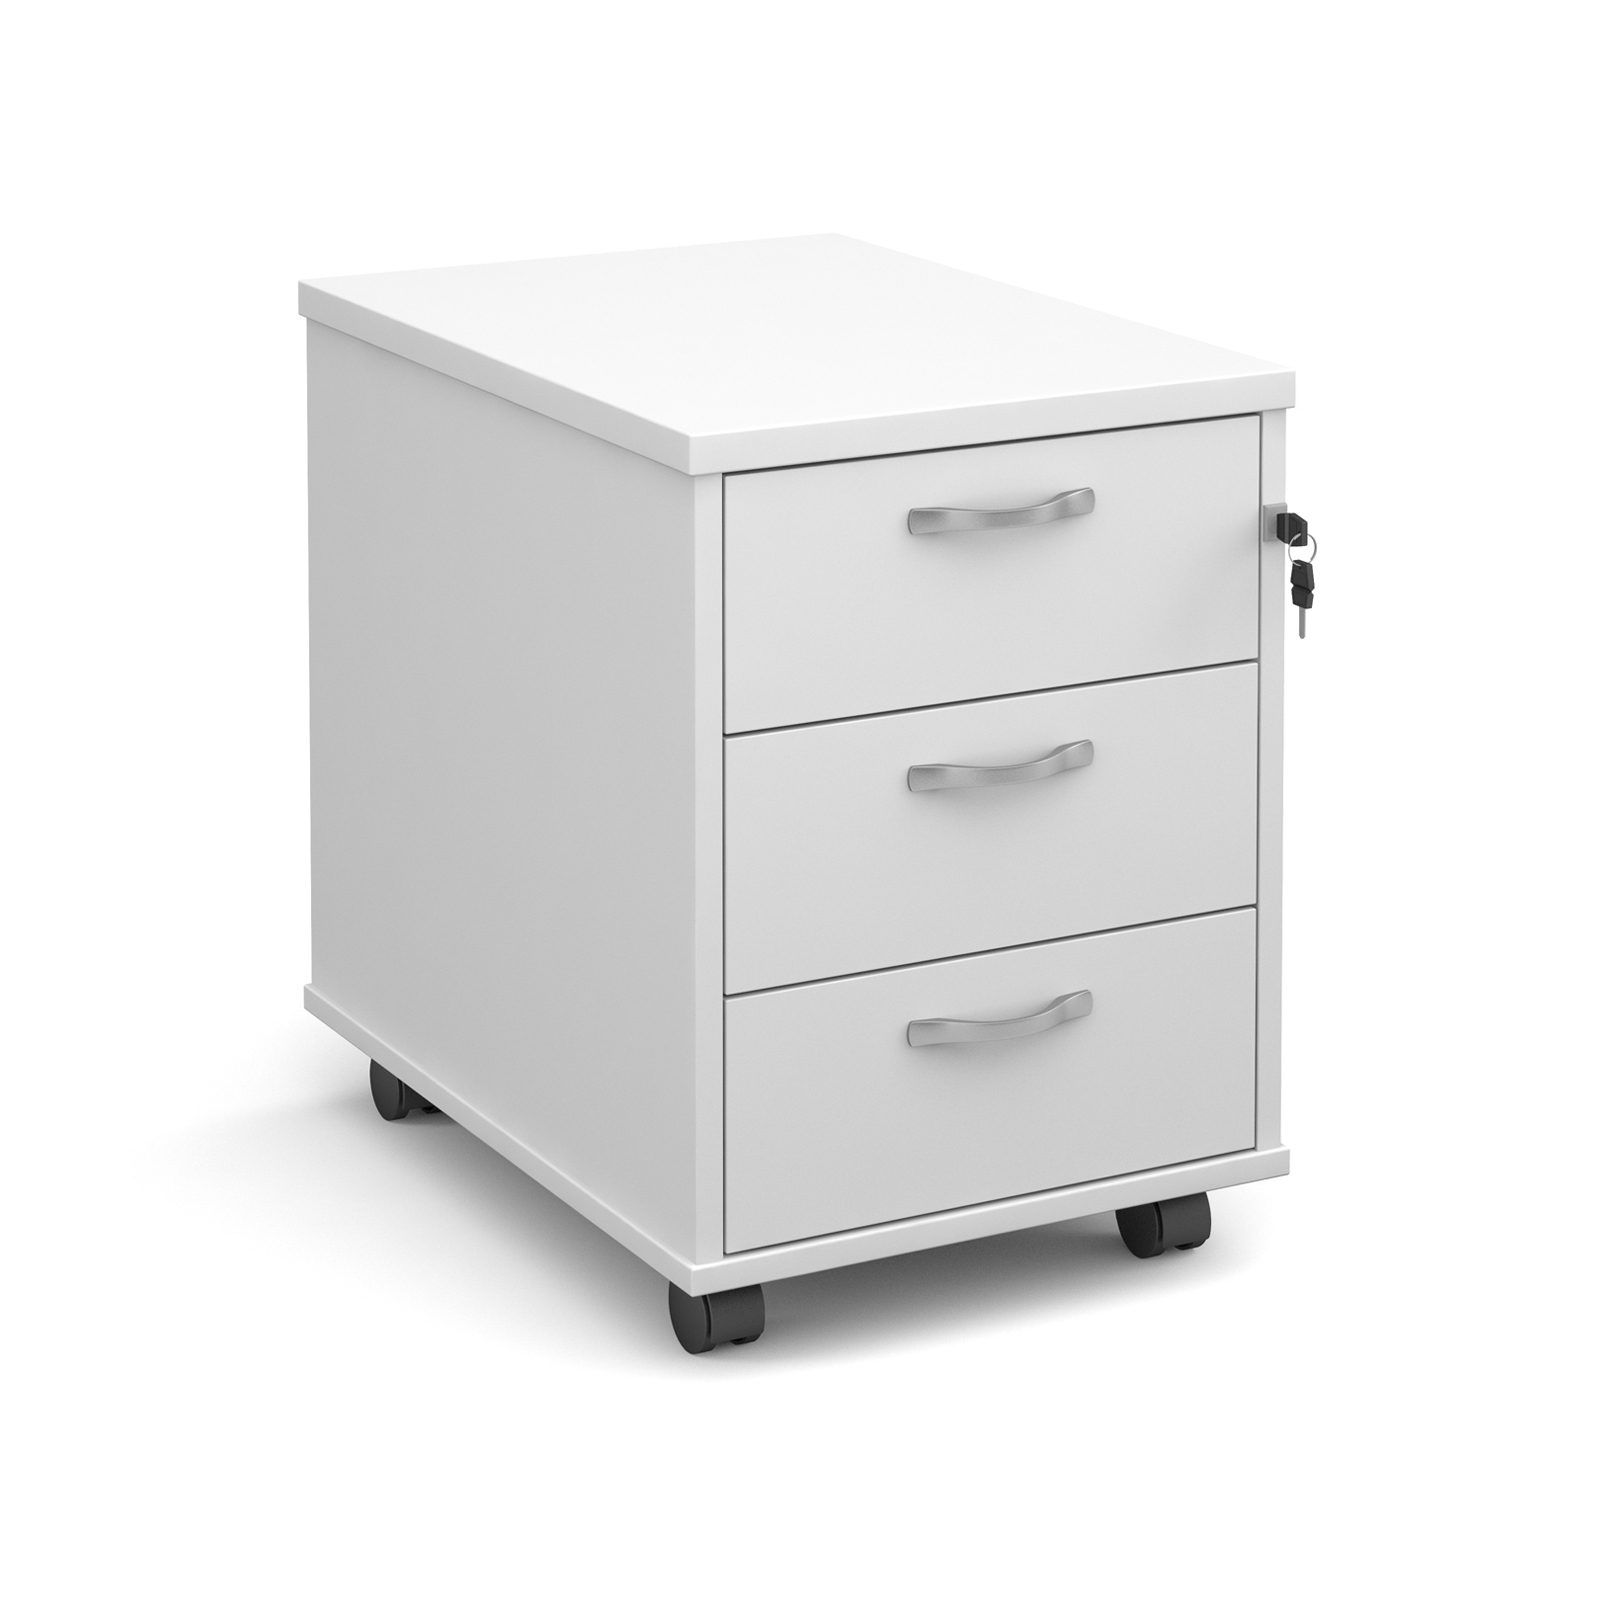 3 Drawer Mobile 3 drawer pedestal with silver handles 600mm deep - white